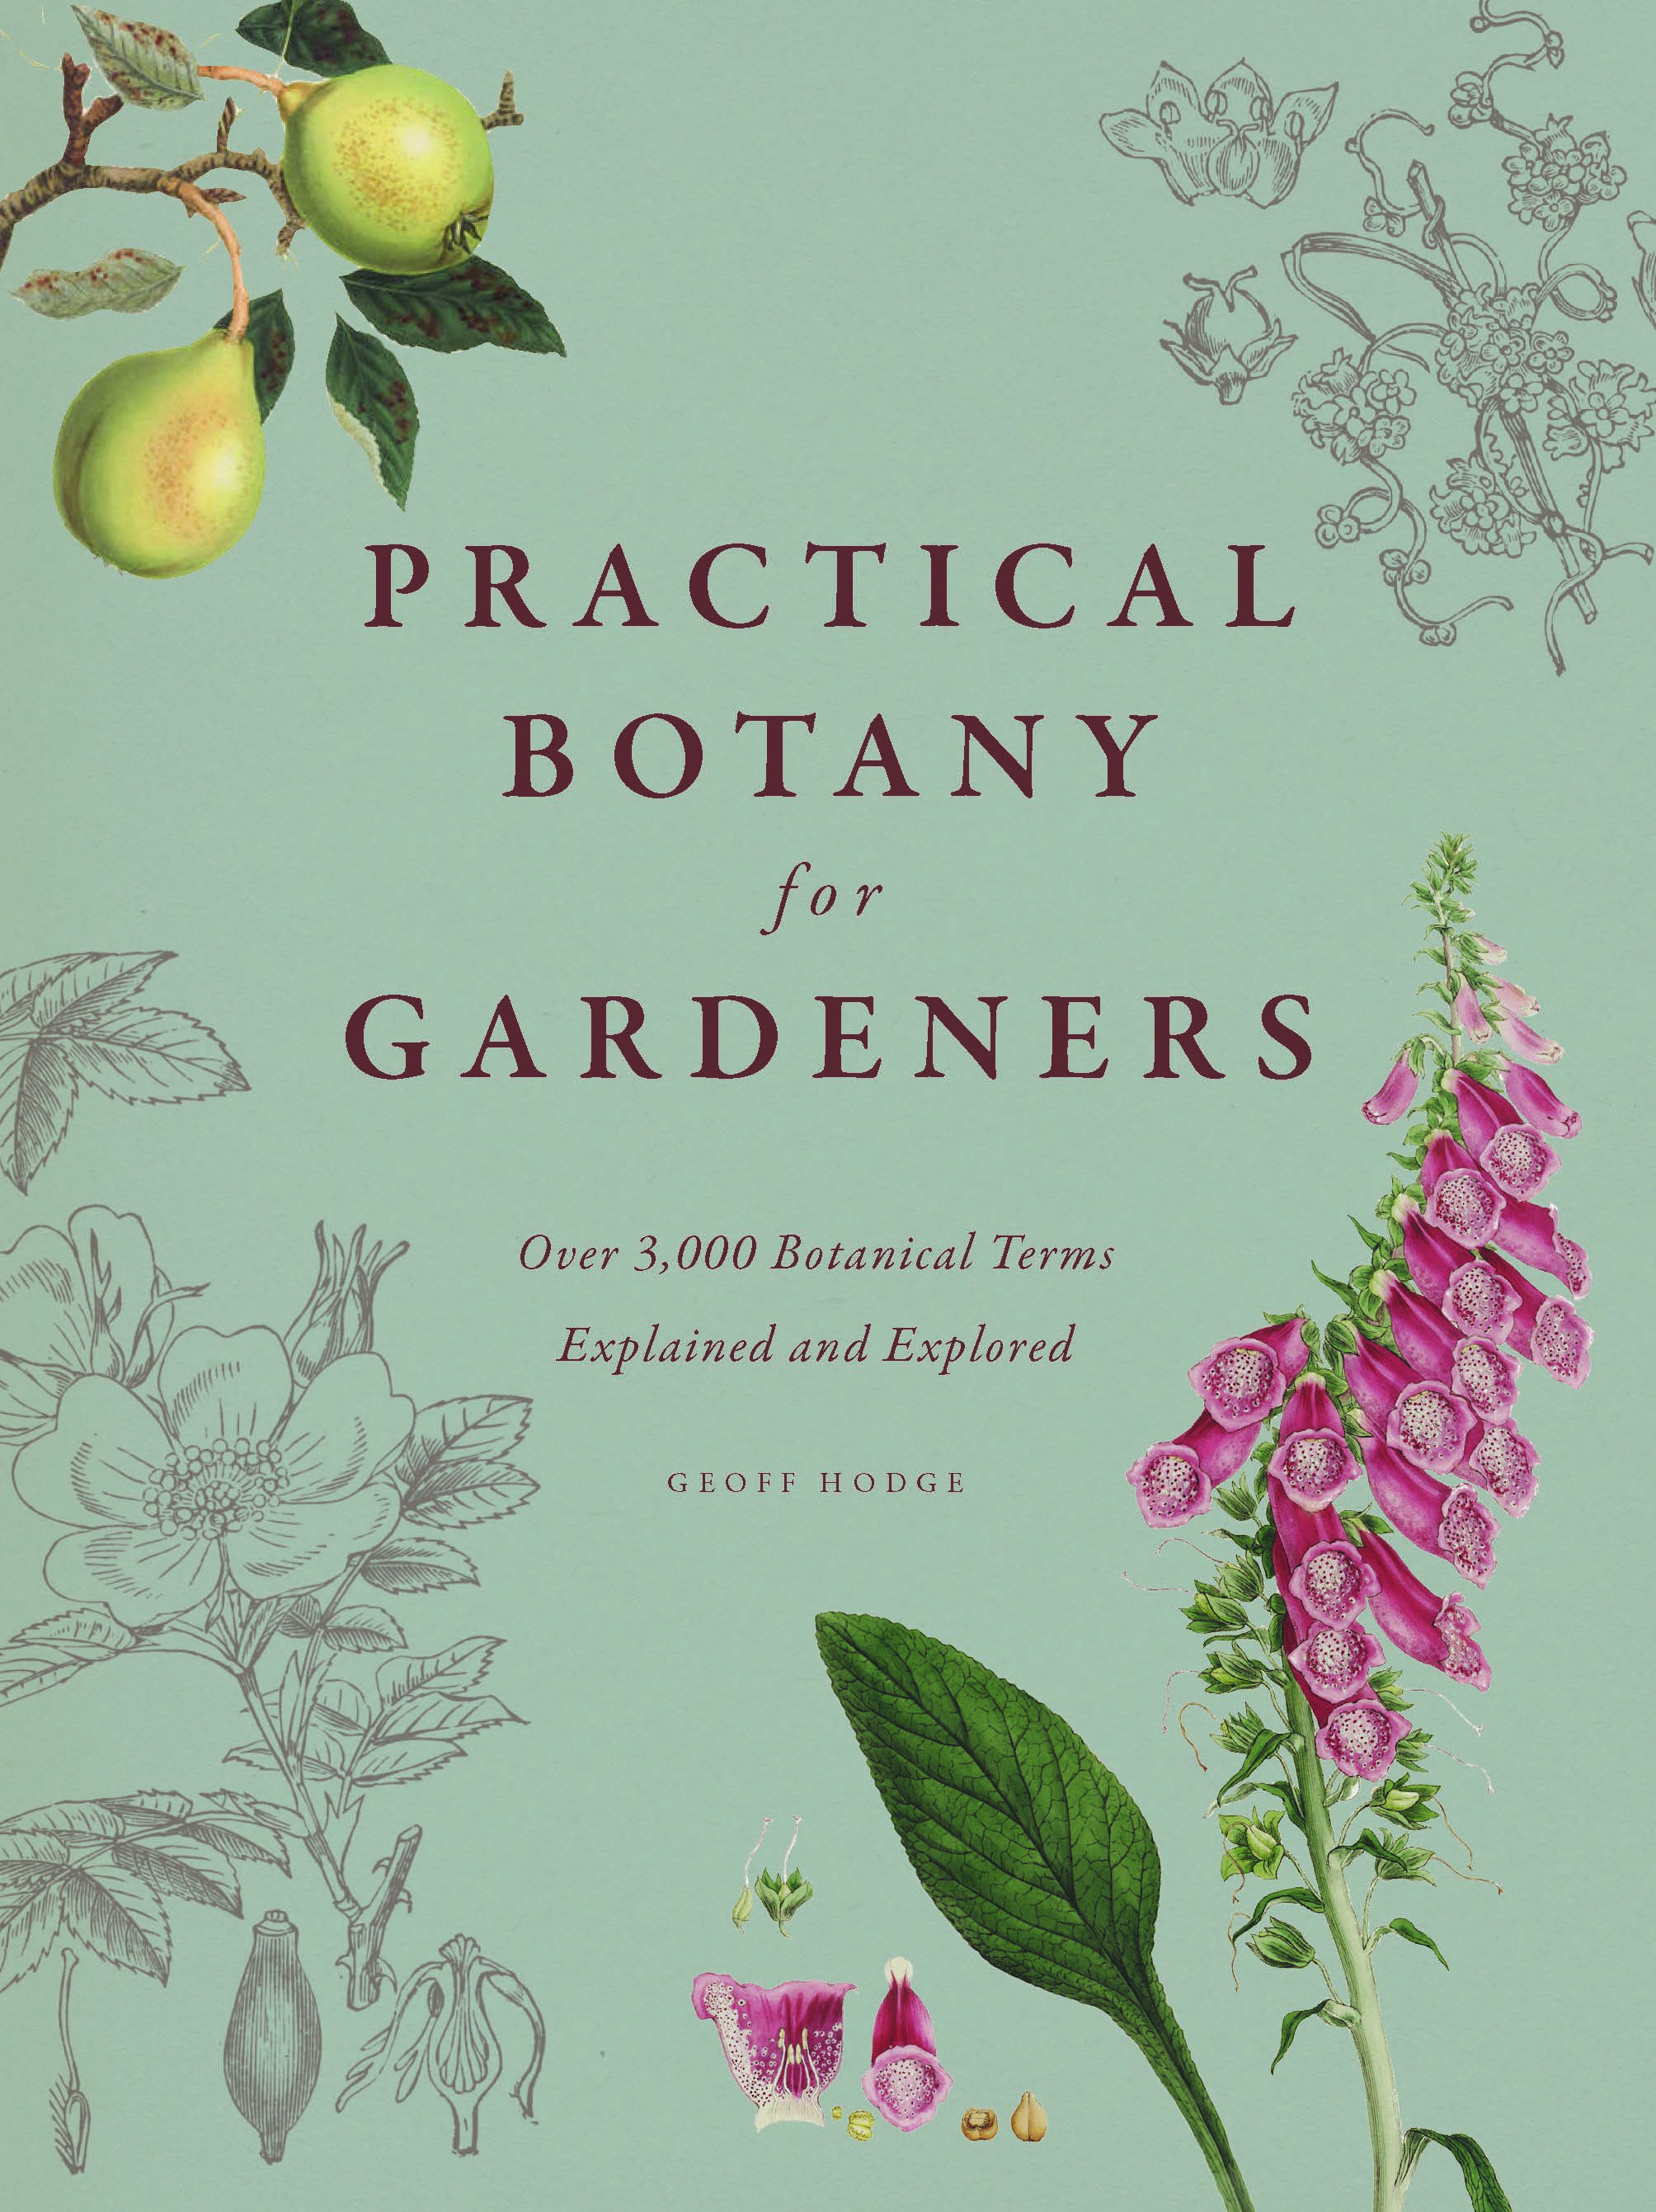 Practical botany for gardeners over 3000 botanical terms explained addthis sharing buttons fandeluxe Choice Image